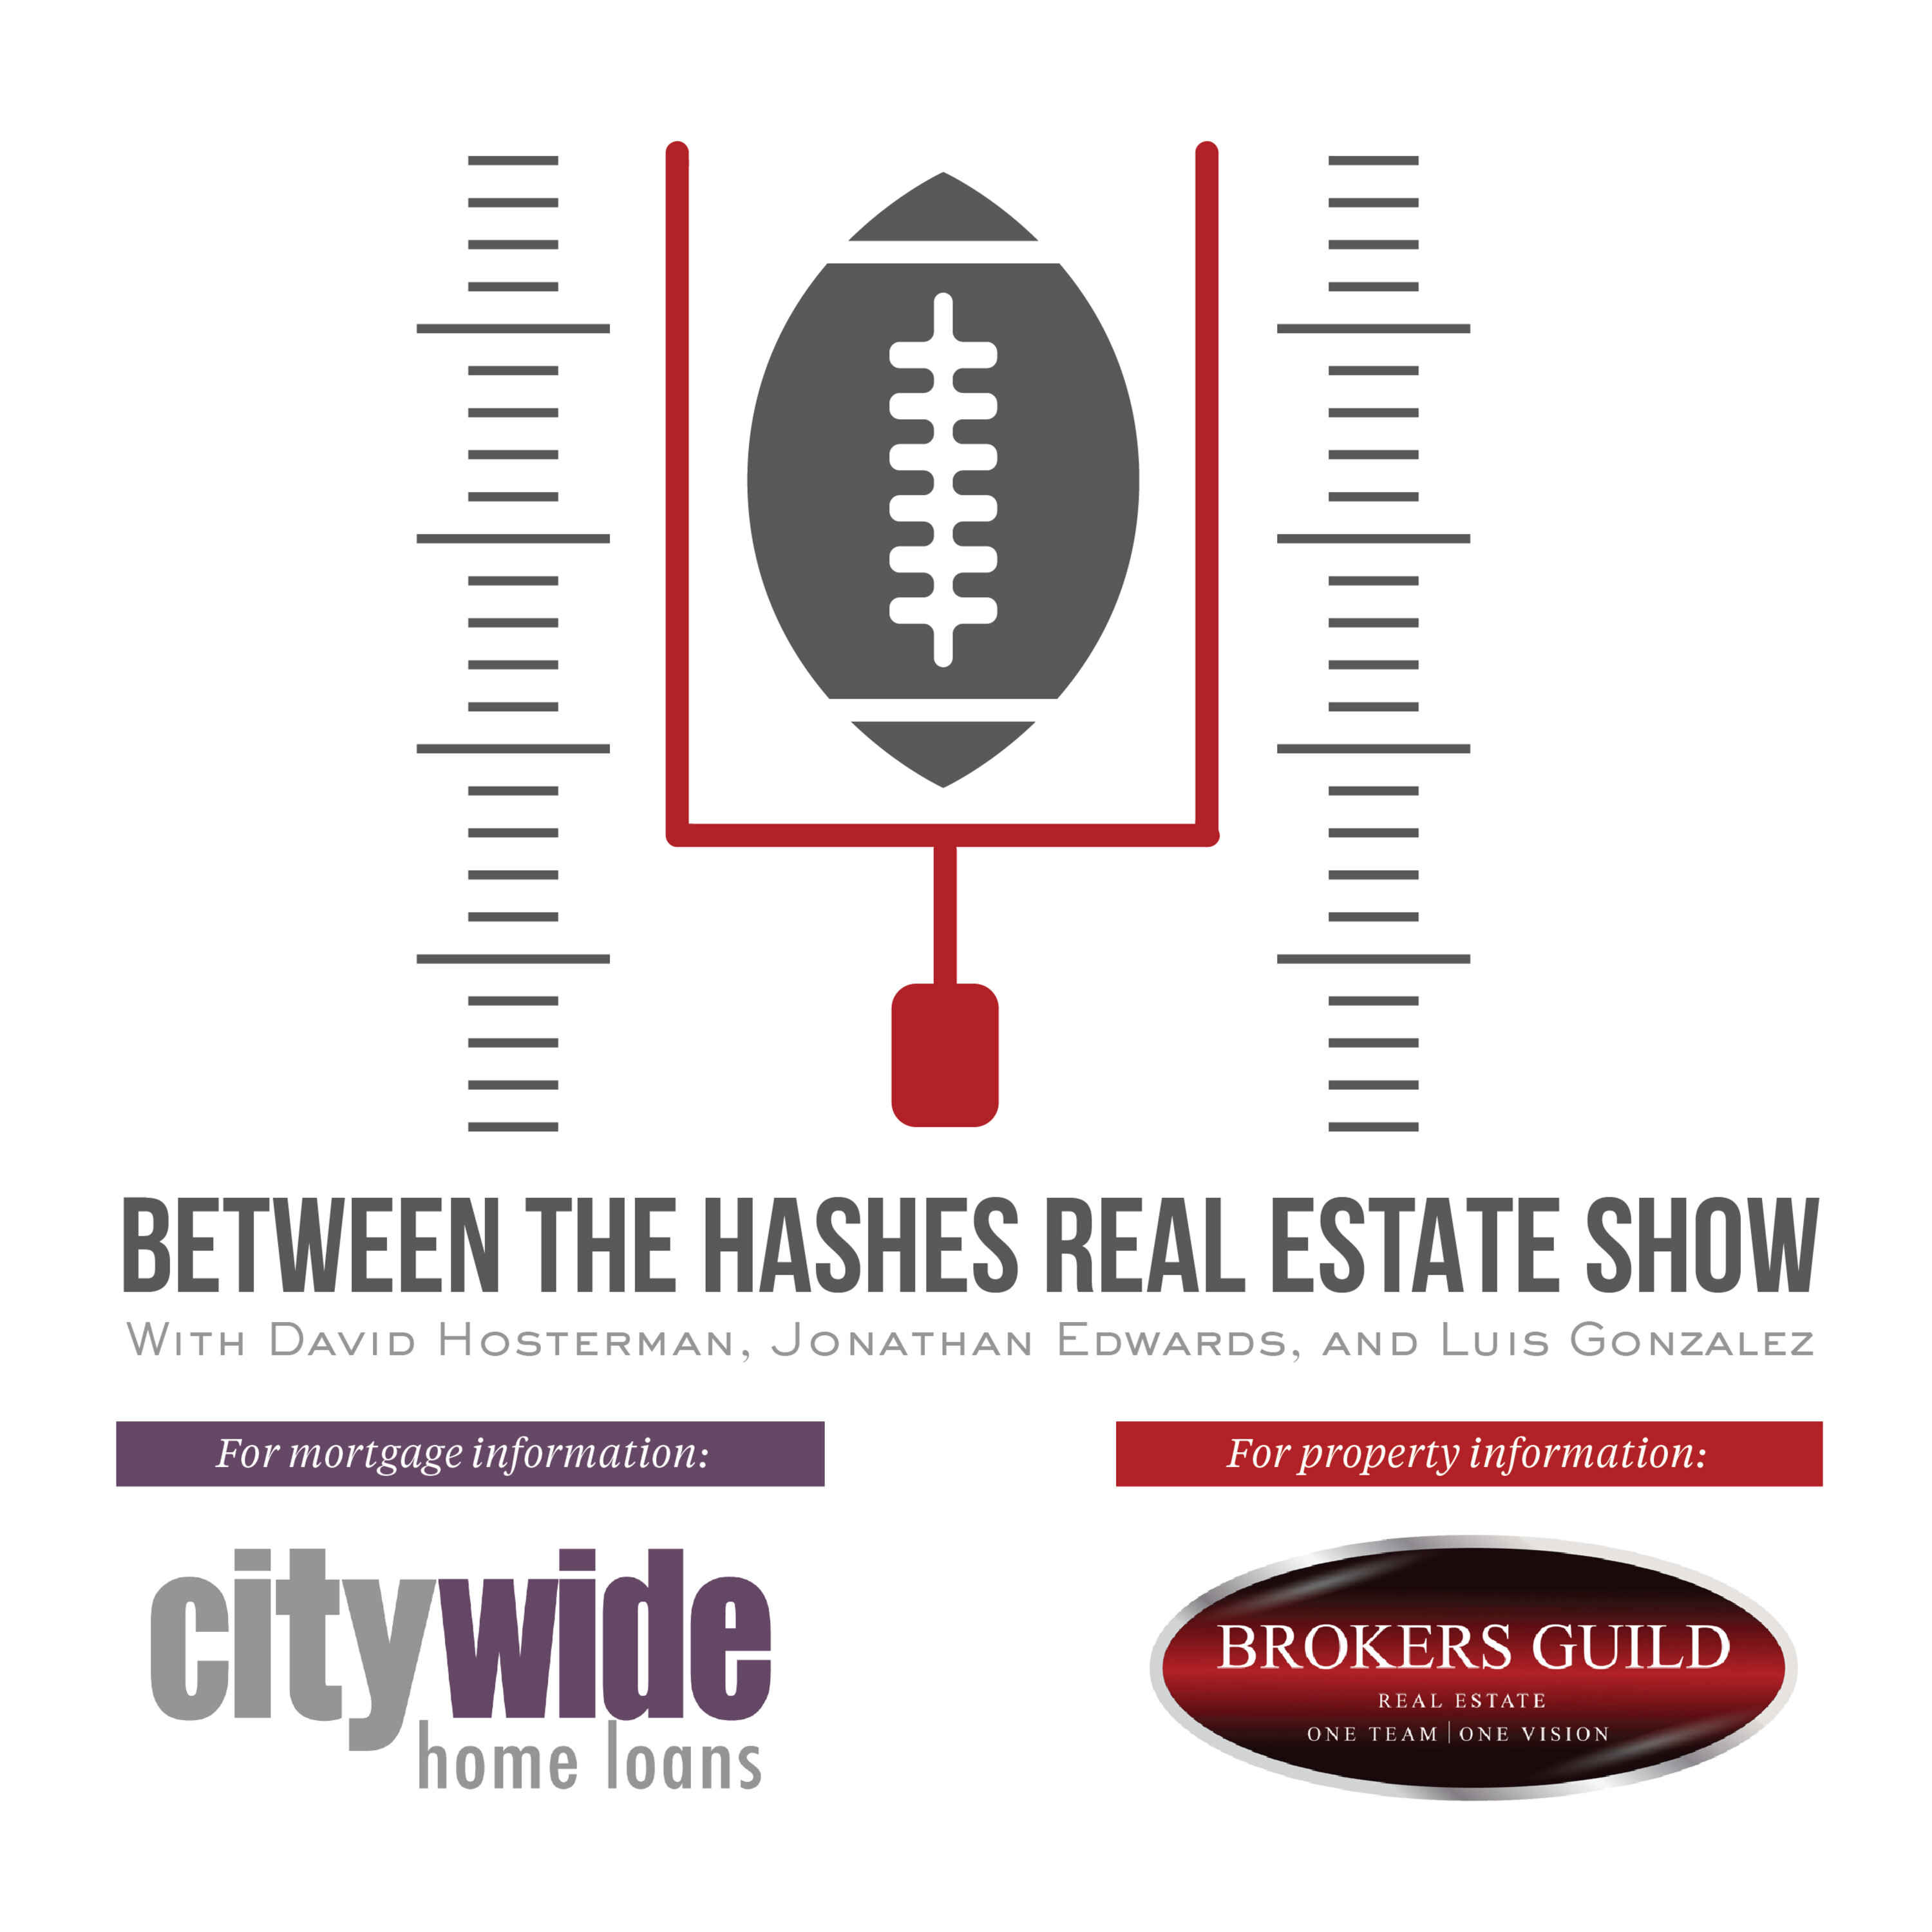 Between The Hashes Real Estate Show Podcast Cover Image